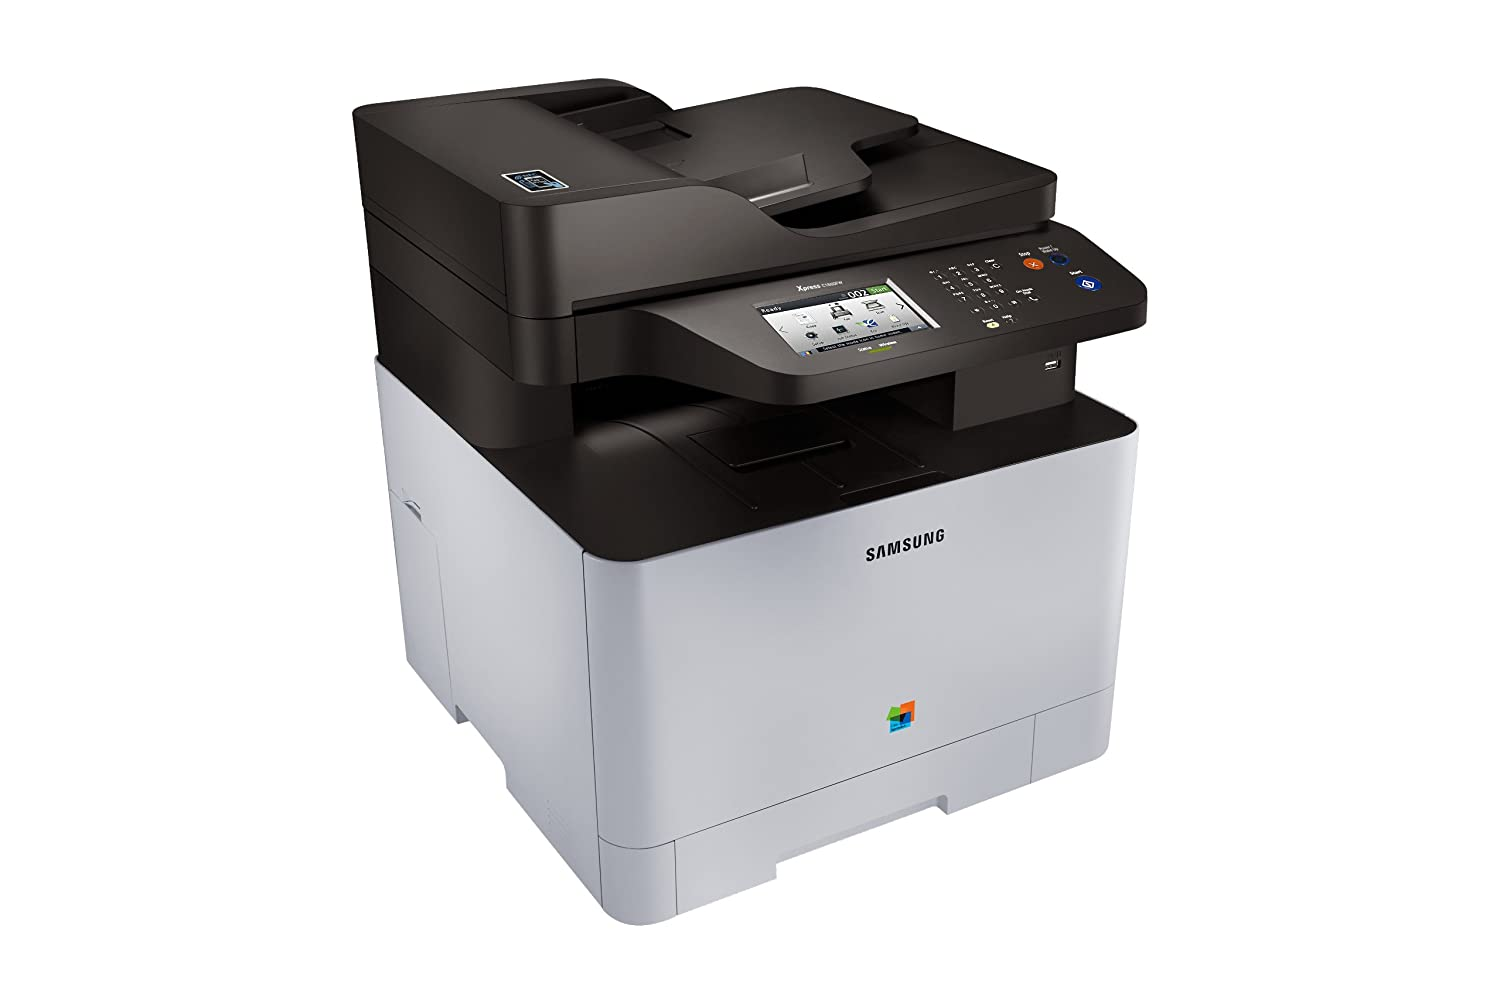 Xpress color printing - Amazon Com Samsung Sl C1860fw Xaa Wireless Color Printer With Scanner Copier And Fax Amazon Dash Replenishment Enabled Electronics